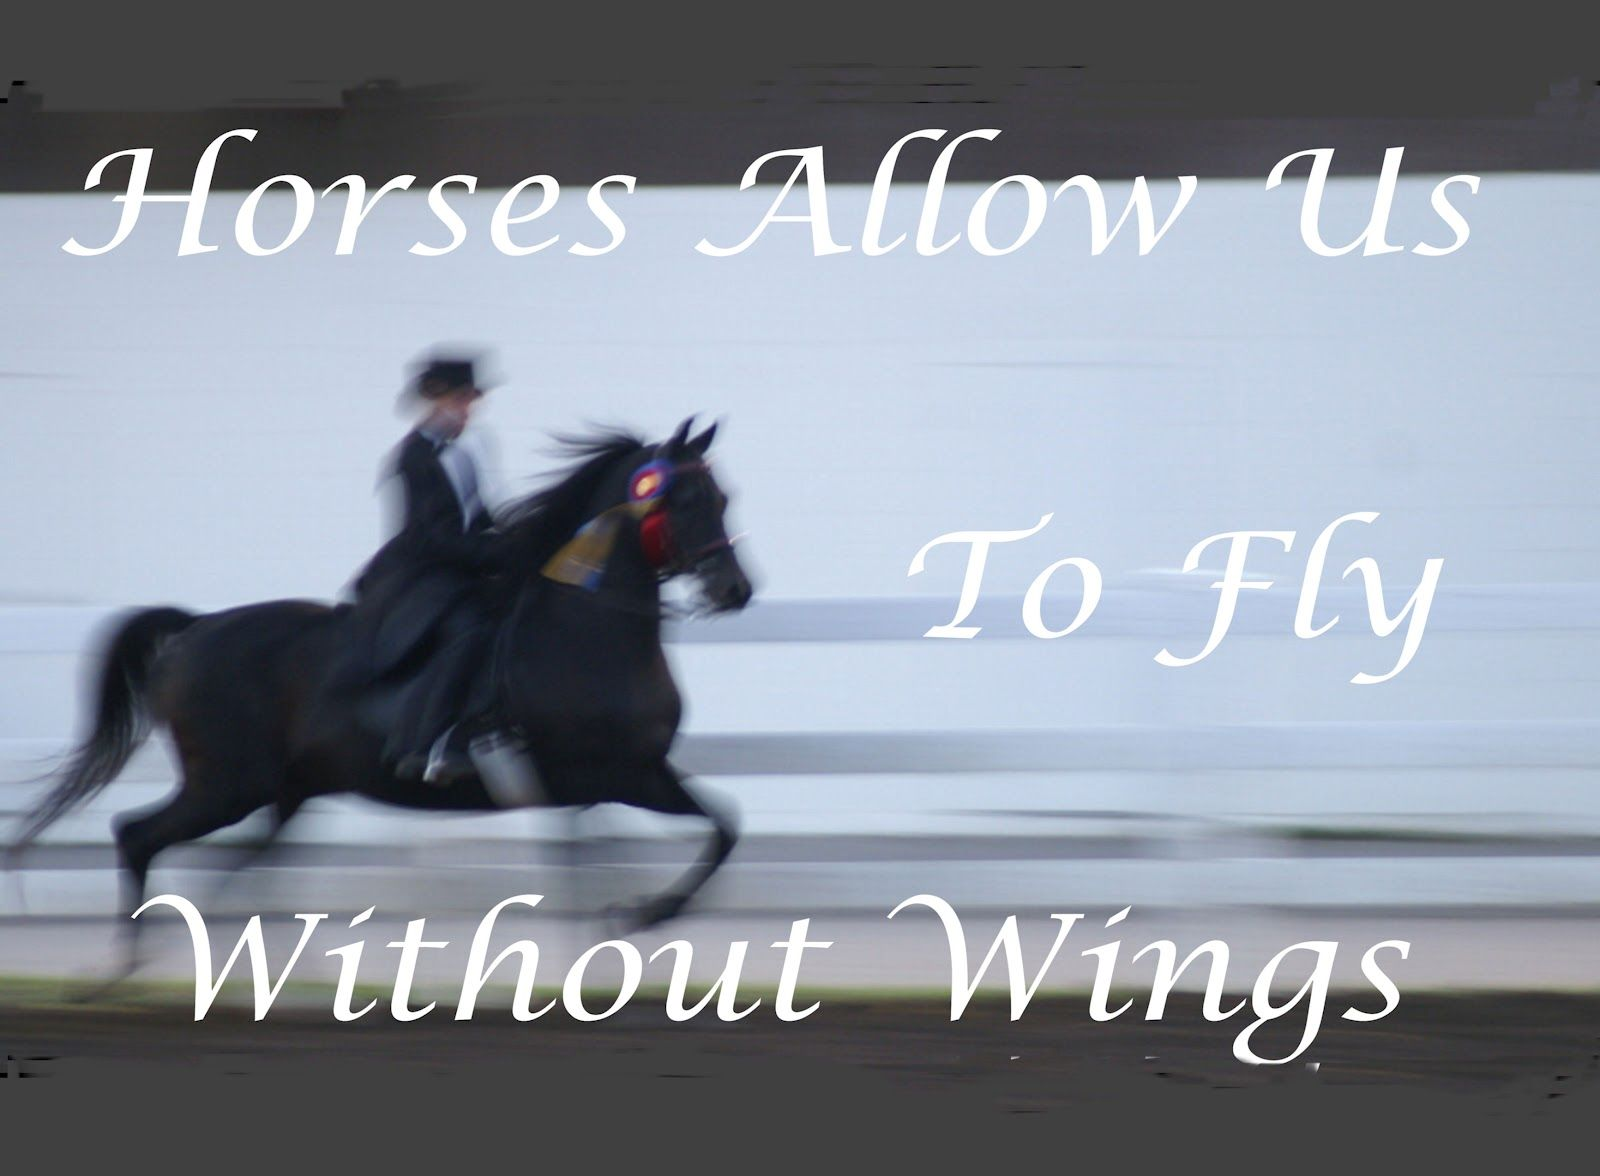 Fly without wings...